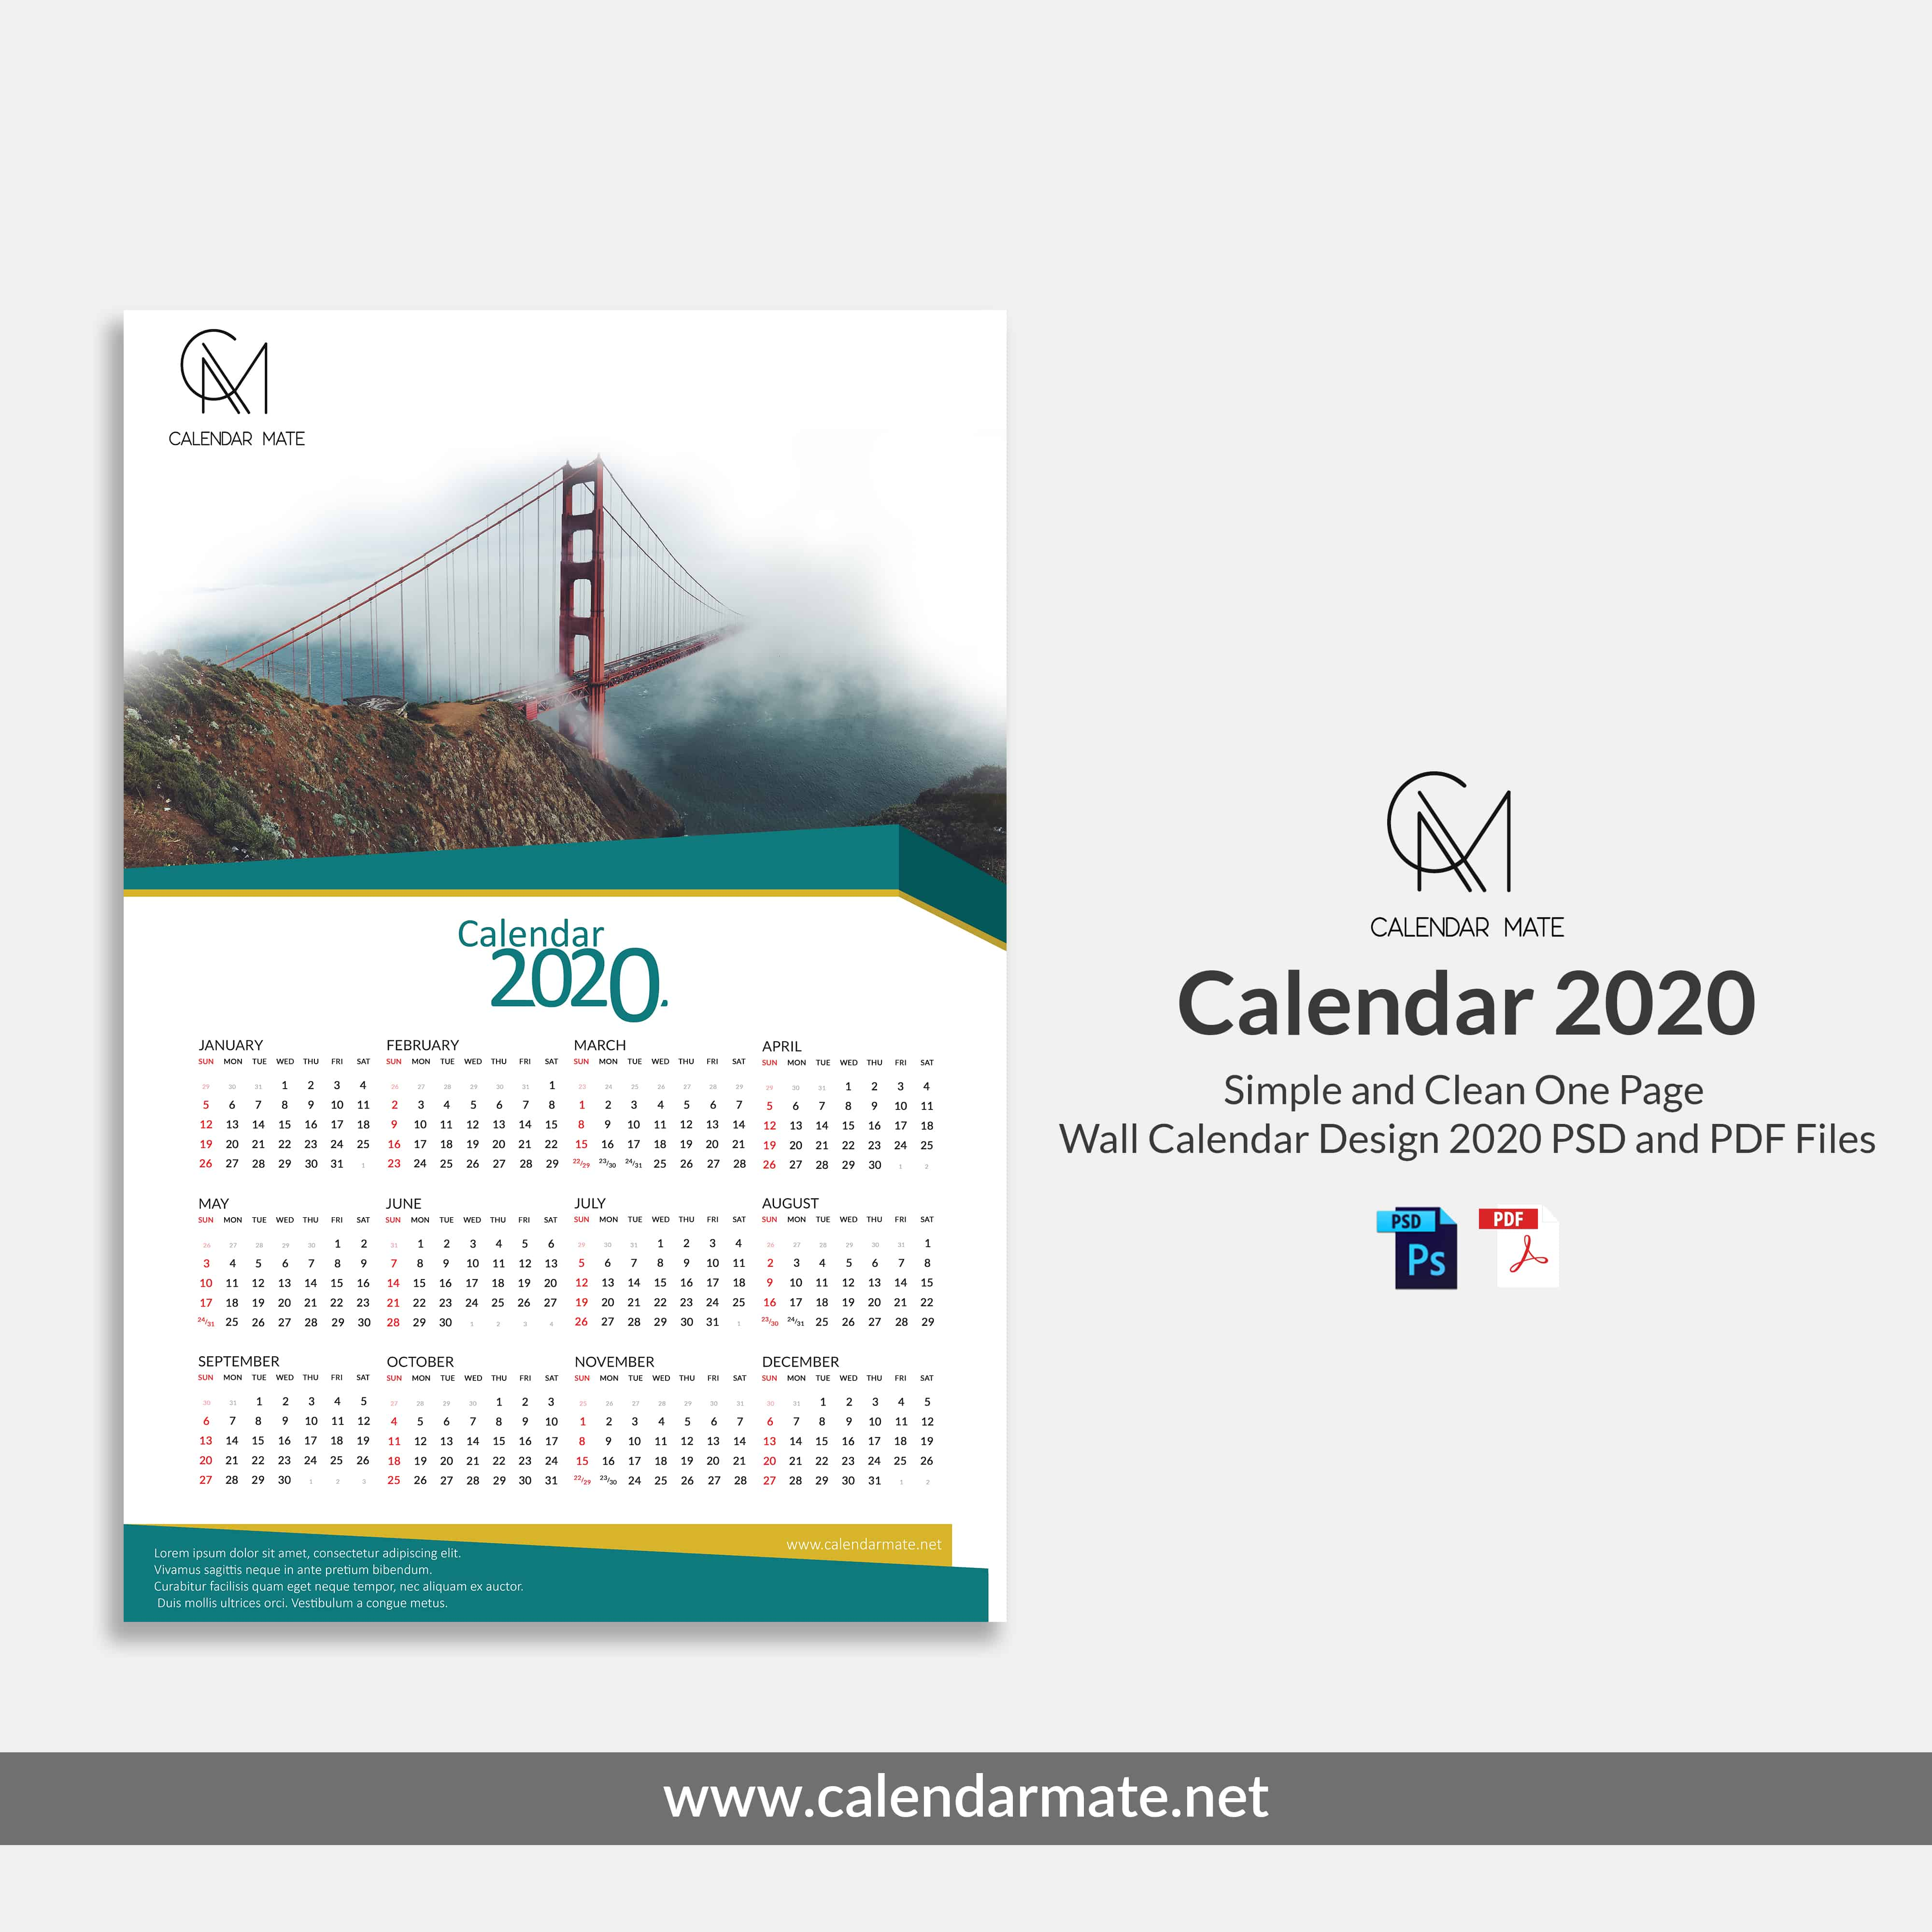 Damas: Simple and Clean One Page Free Wall Calendar Design Template 2020